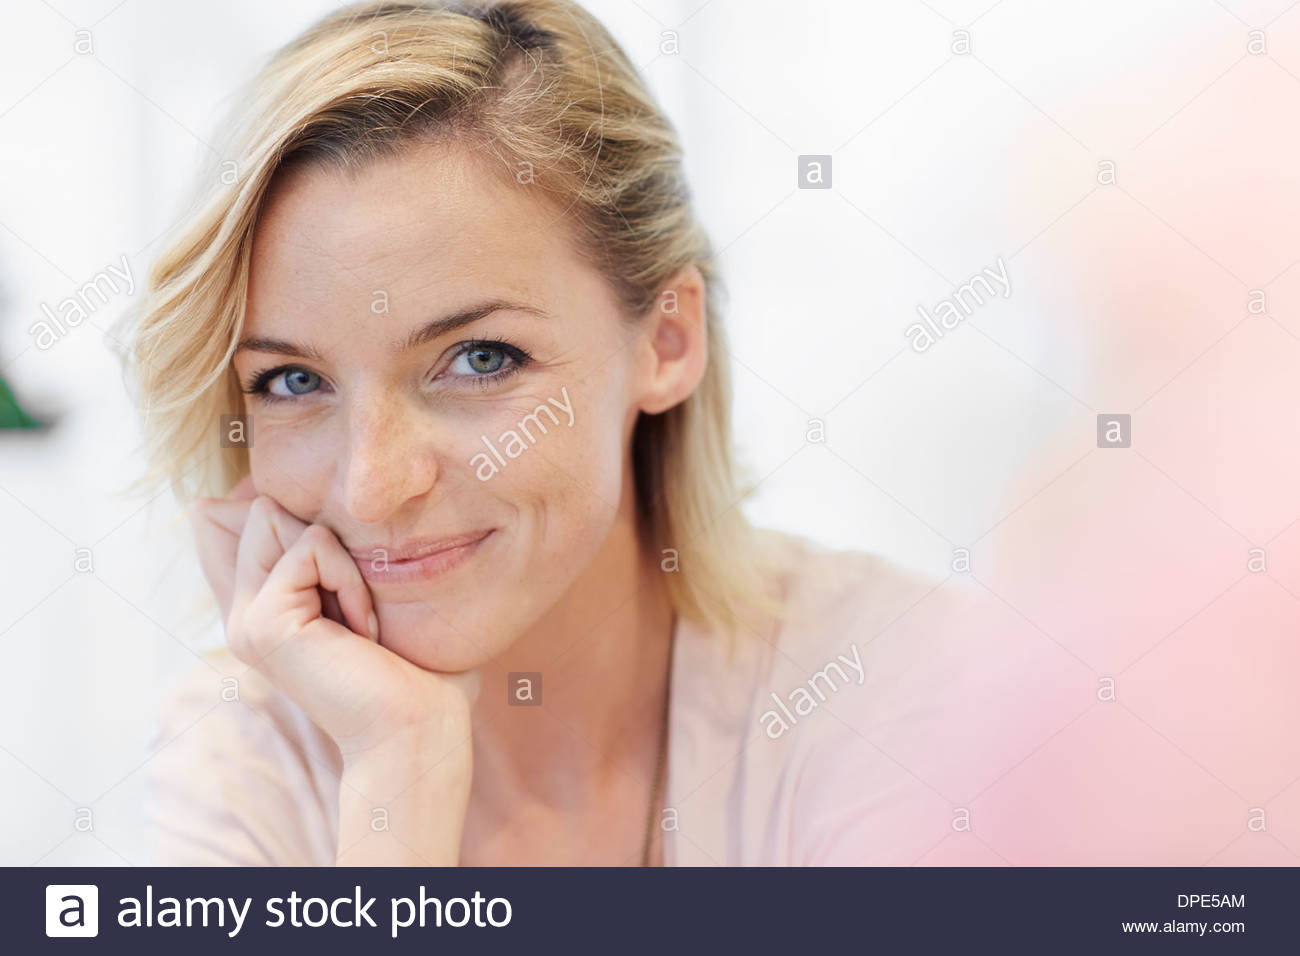 Portrait of mid adult woman with hand on chin Photo Stock